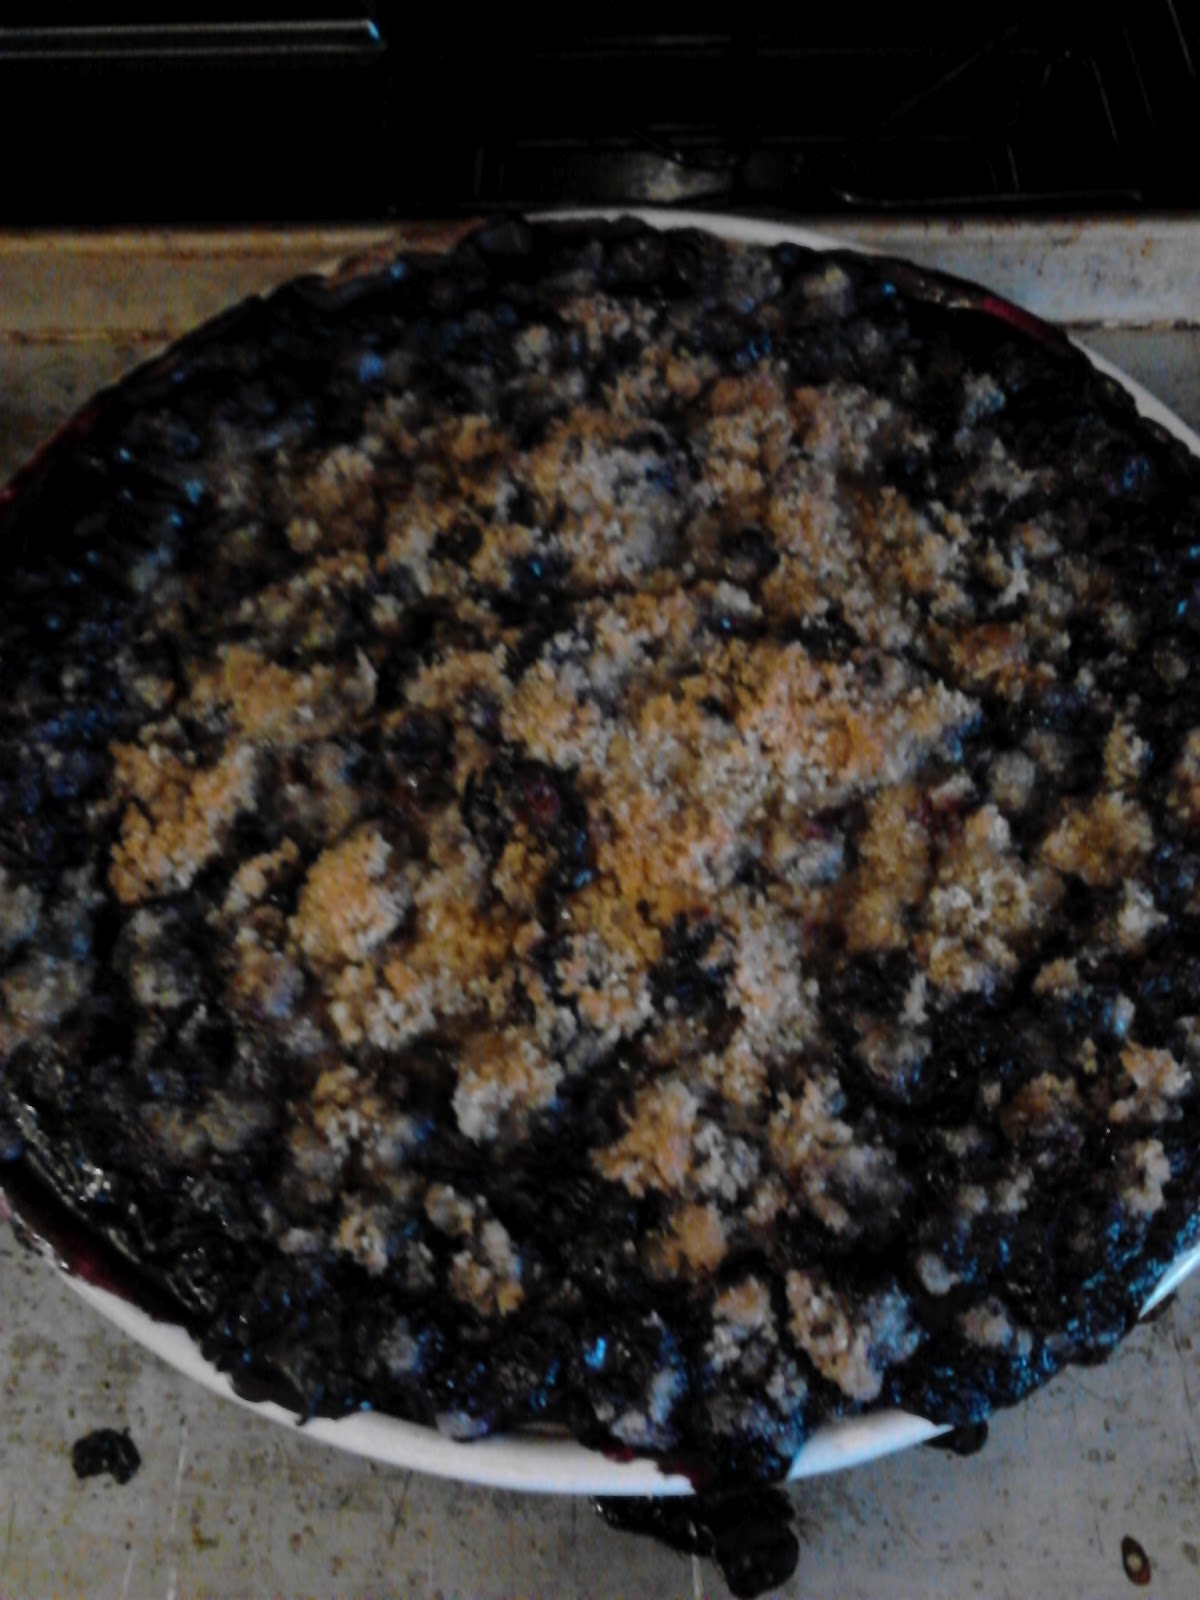 April's Country Life: Blueberry Crumble Pie